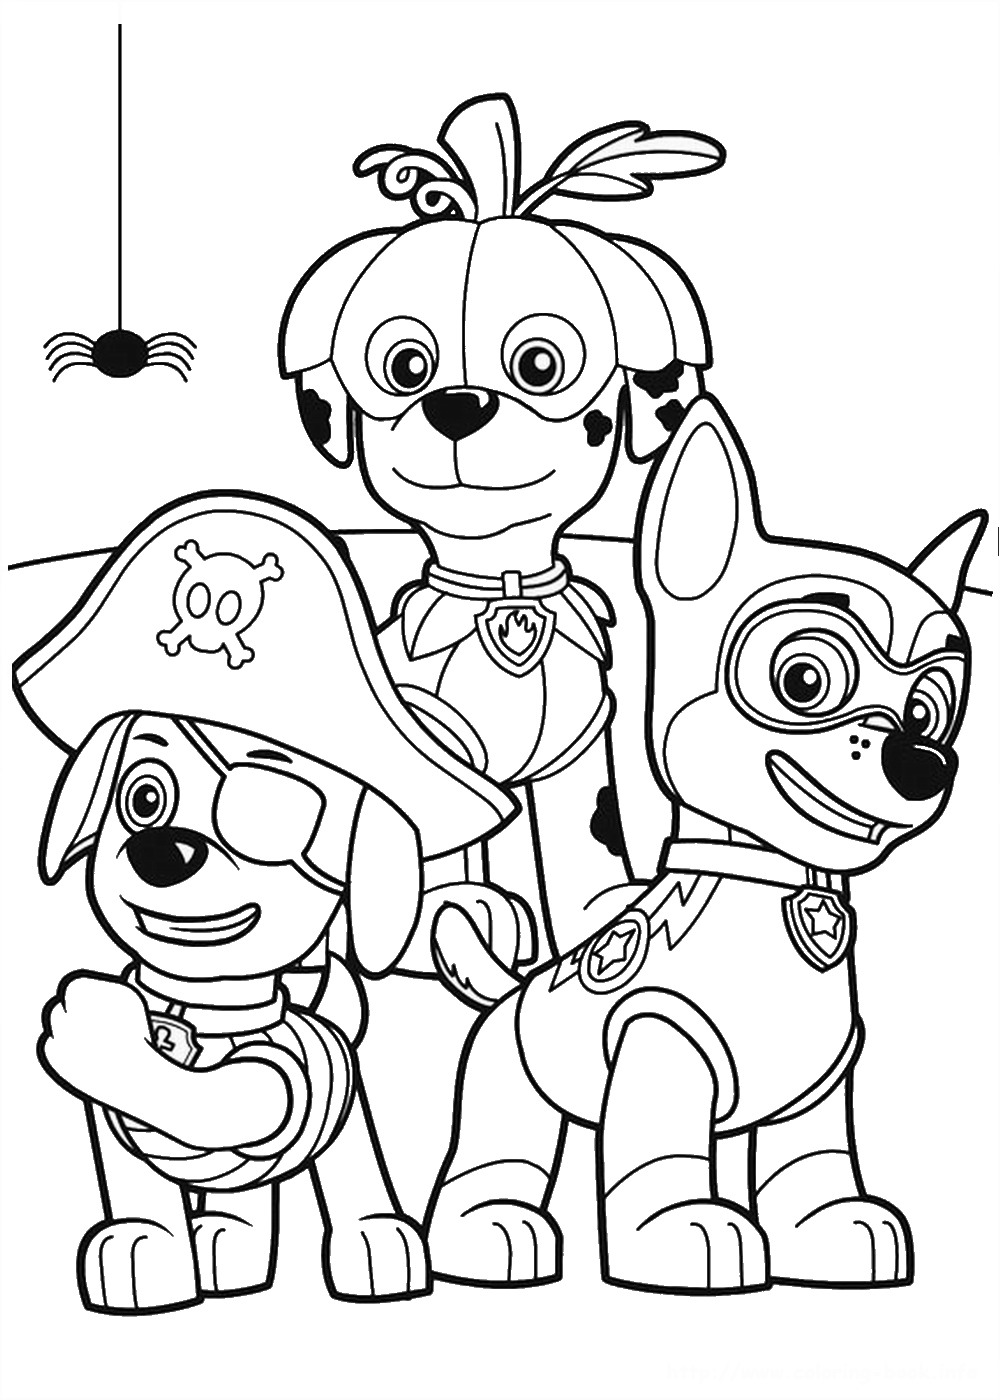 1000x1400 Nickelodeon Coloring Pages Nickelodeon Color Pages Download